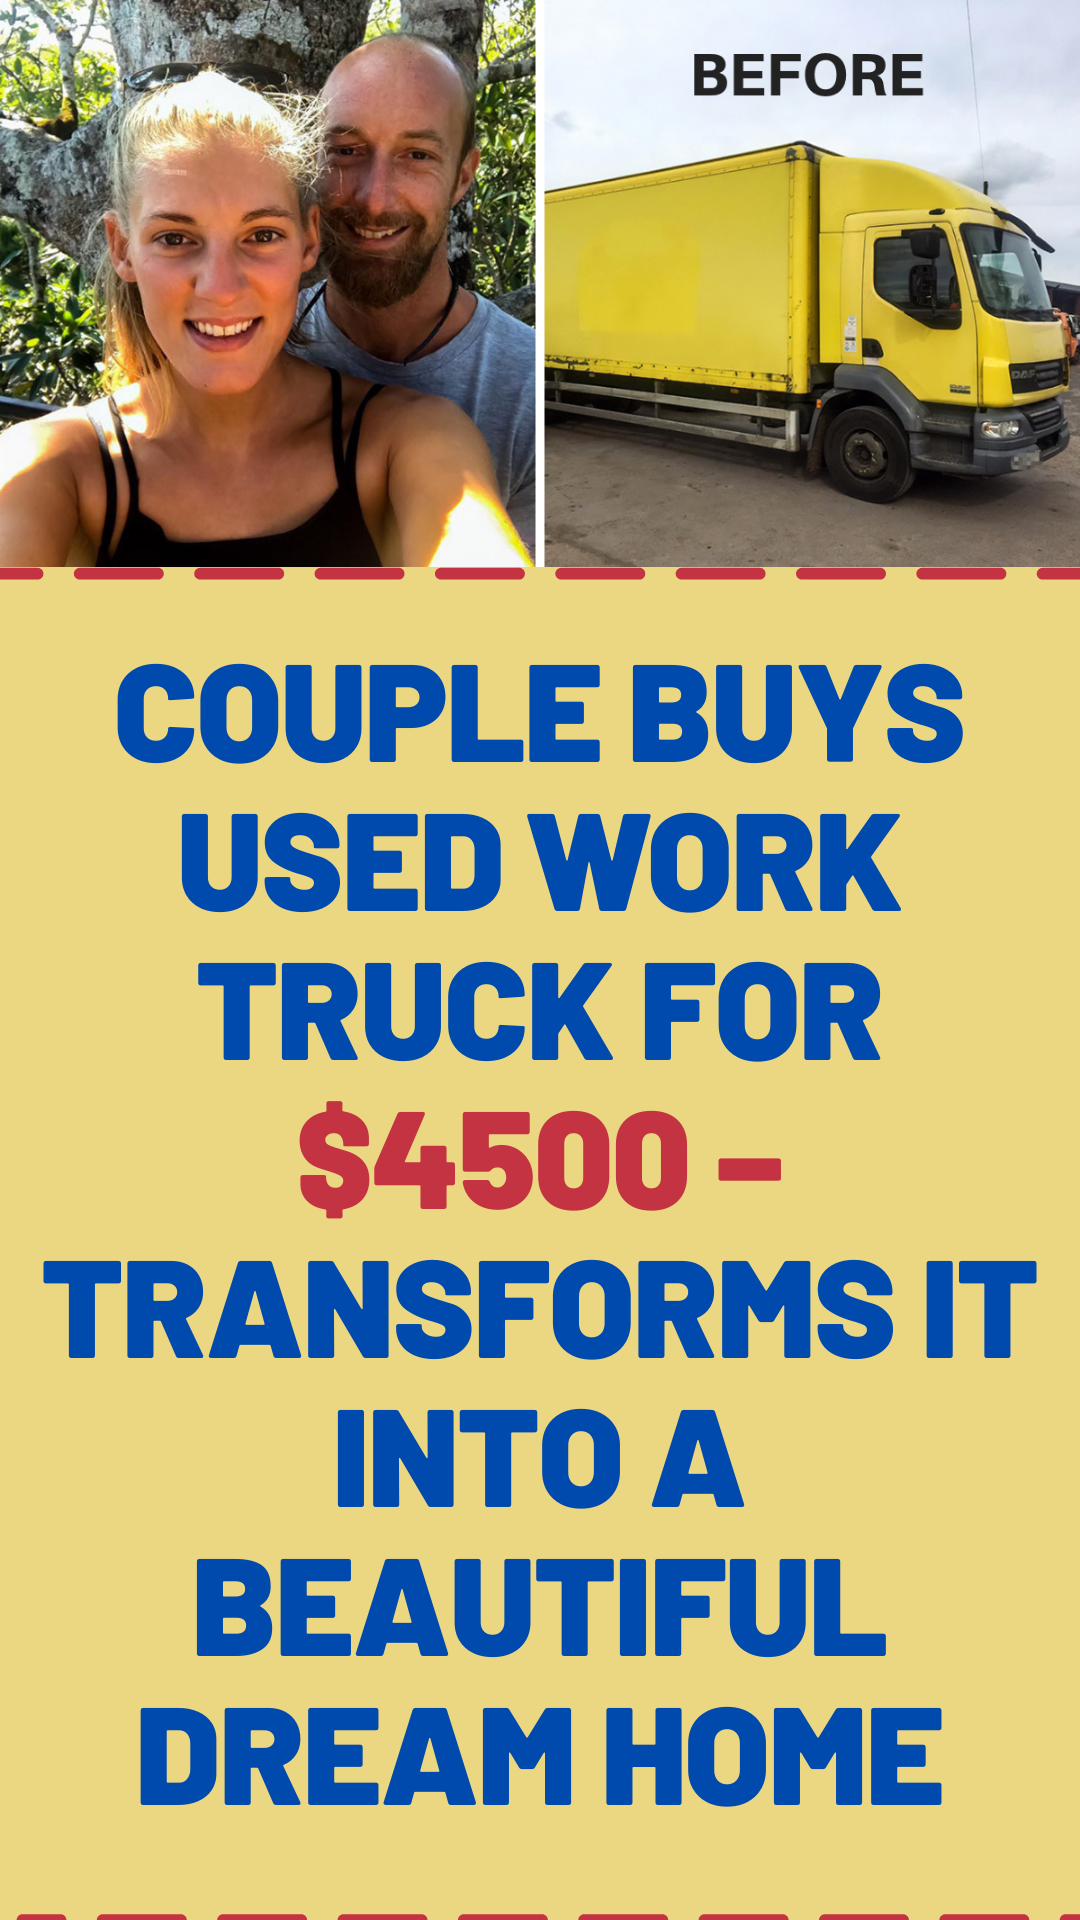 Couple buys used work truck for $4500 – transforms